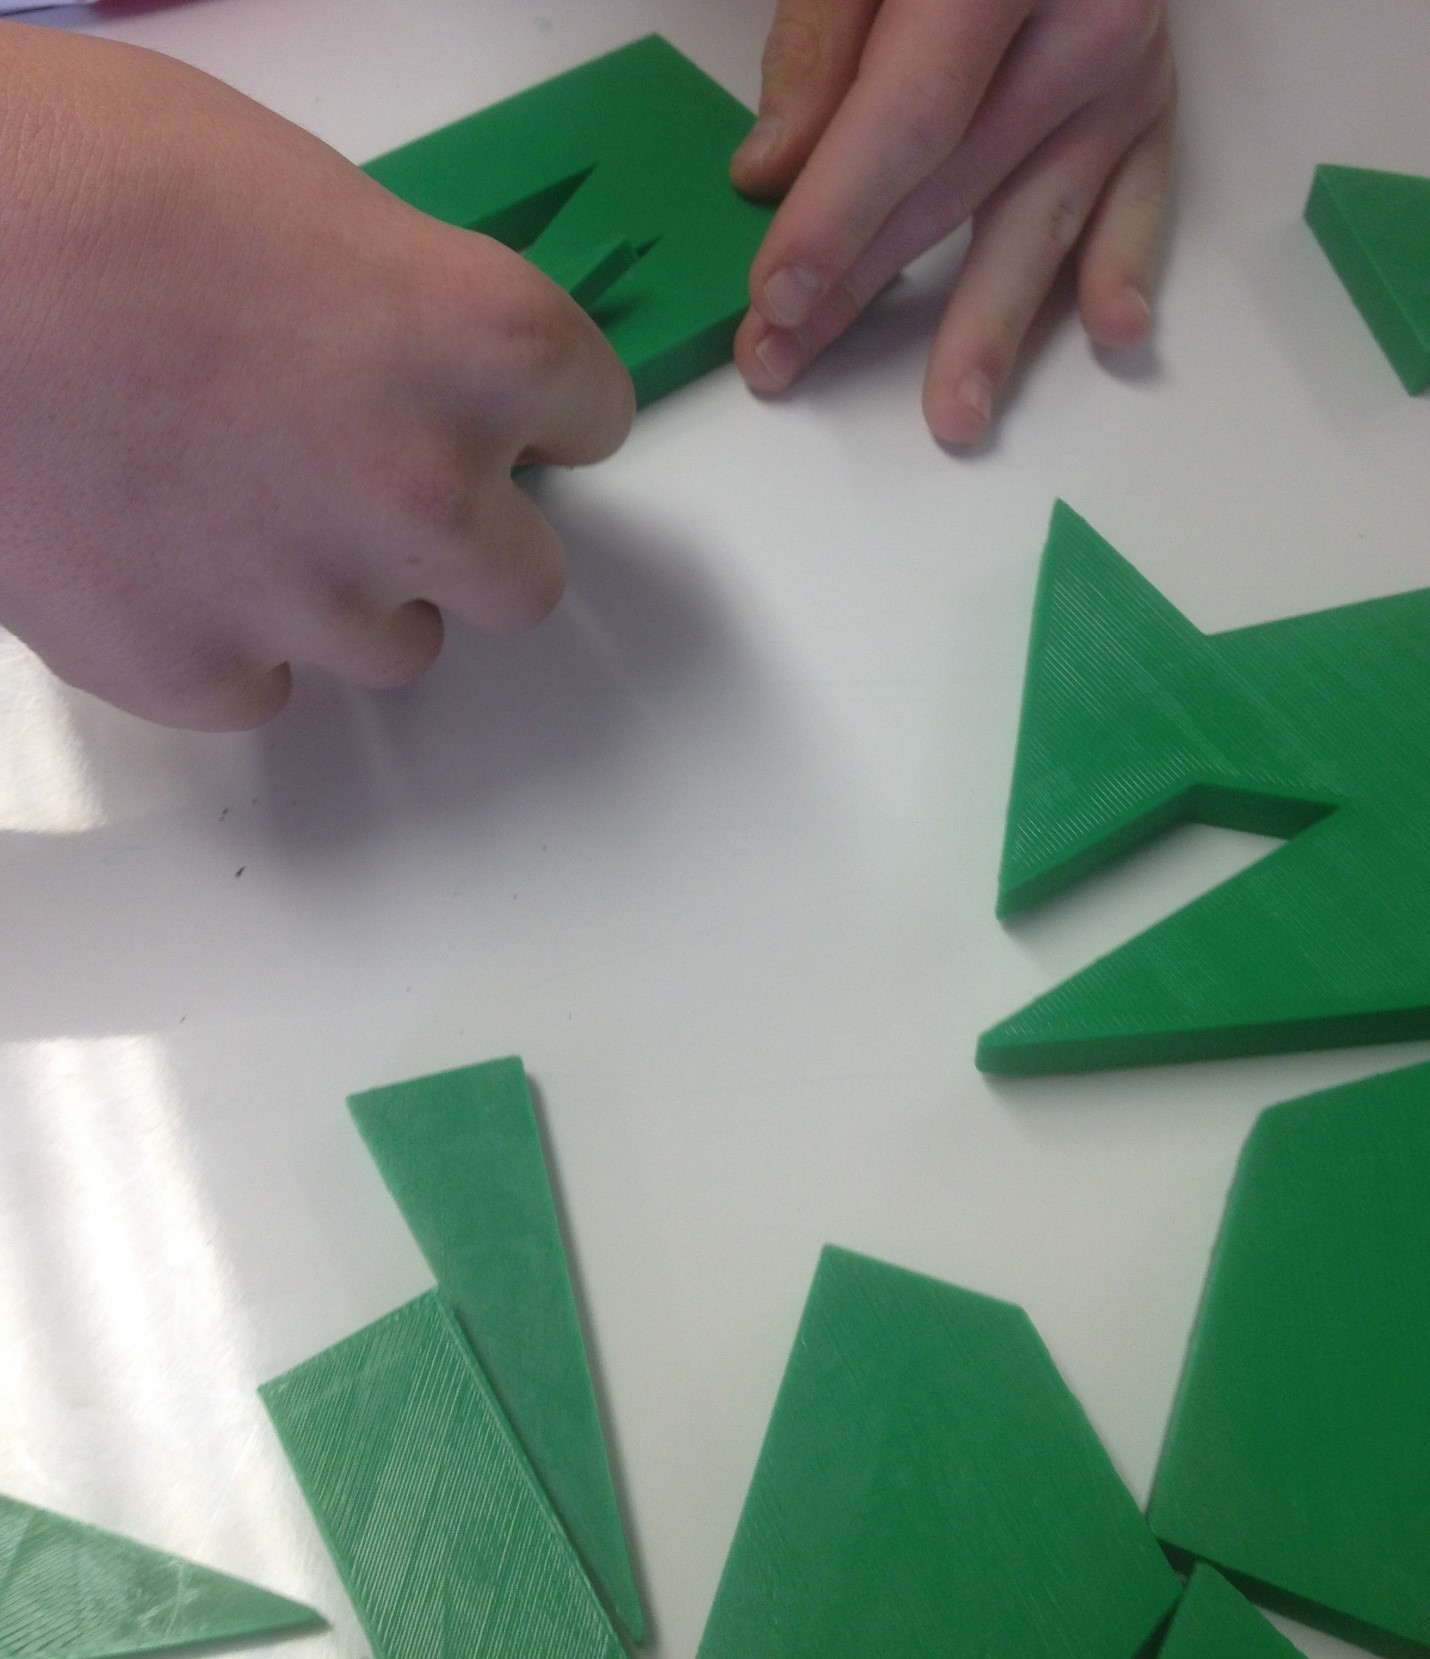 Hands of student using 3d objects